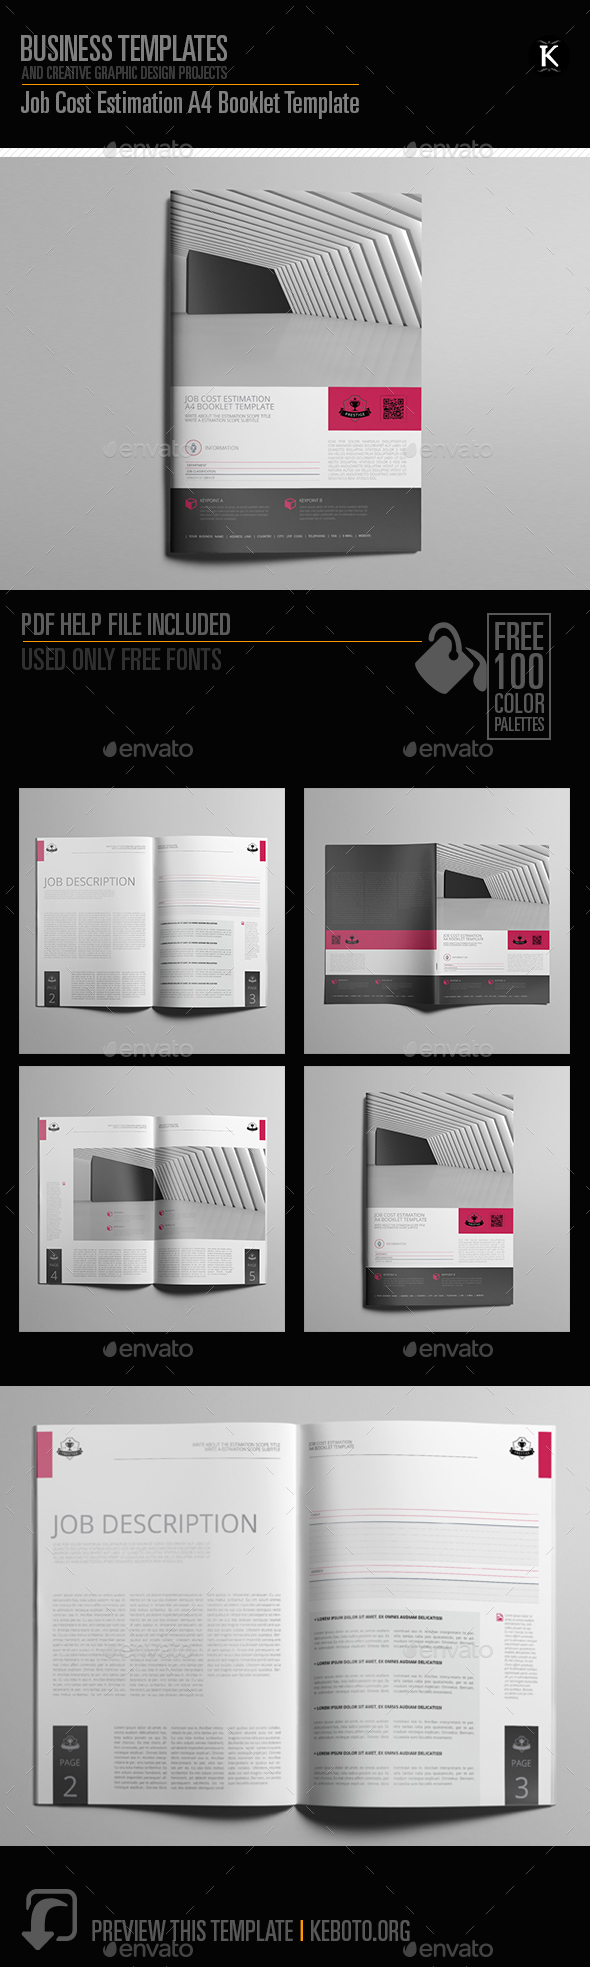 Job Cost Estimation A4 Booklet Template - Miscellaneous Print Templates